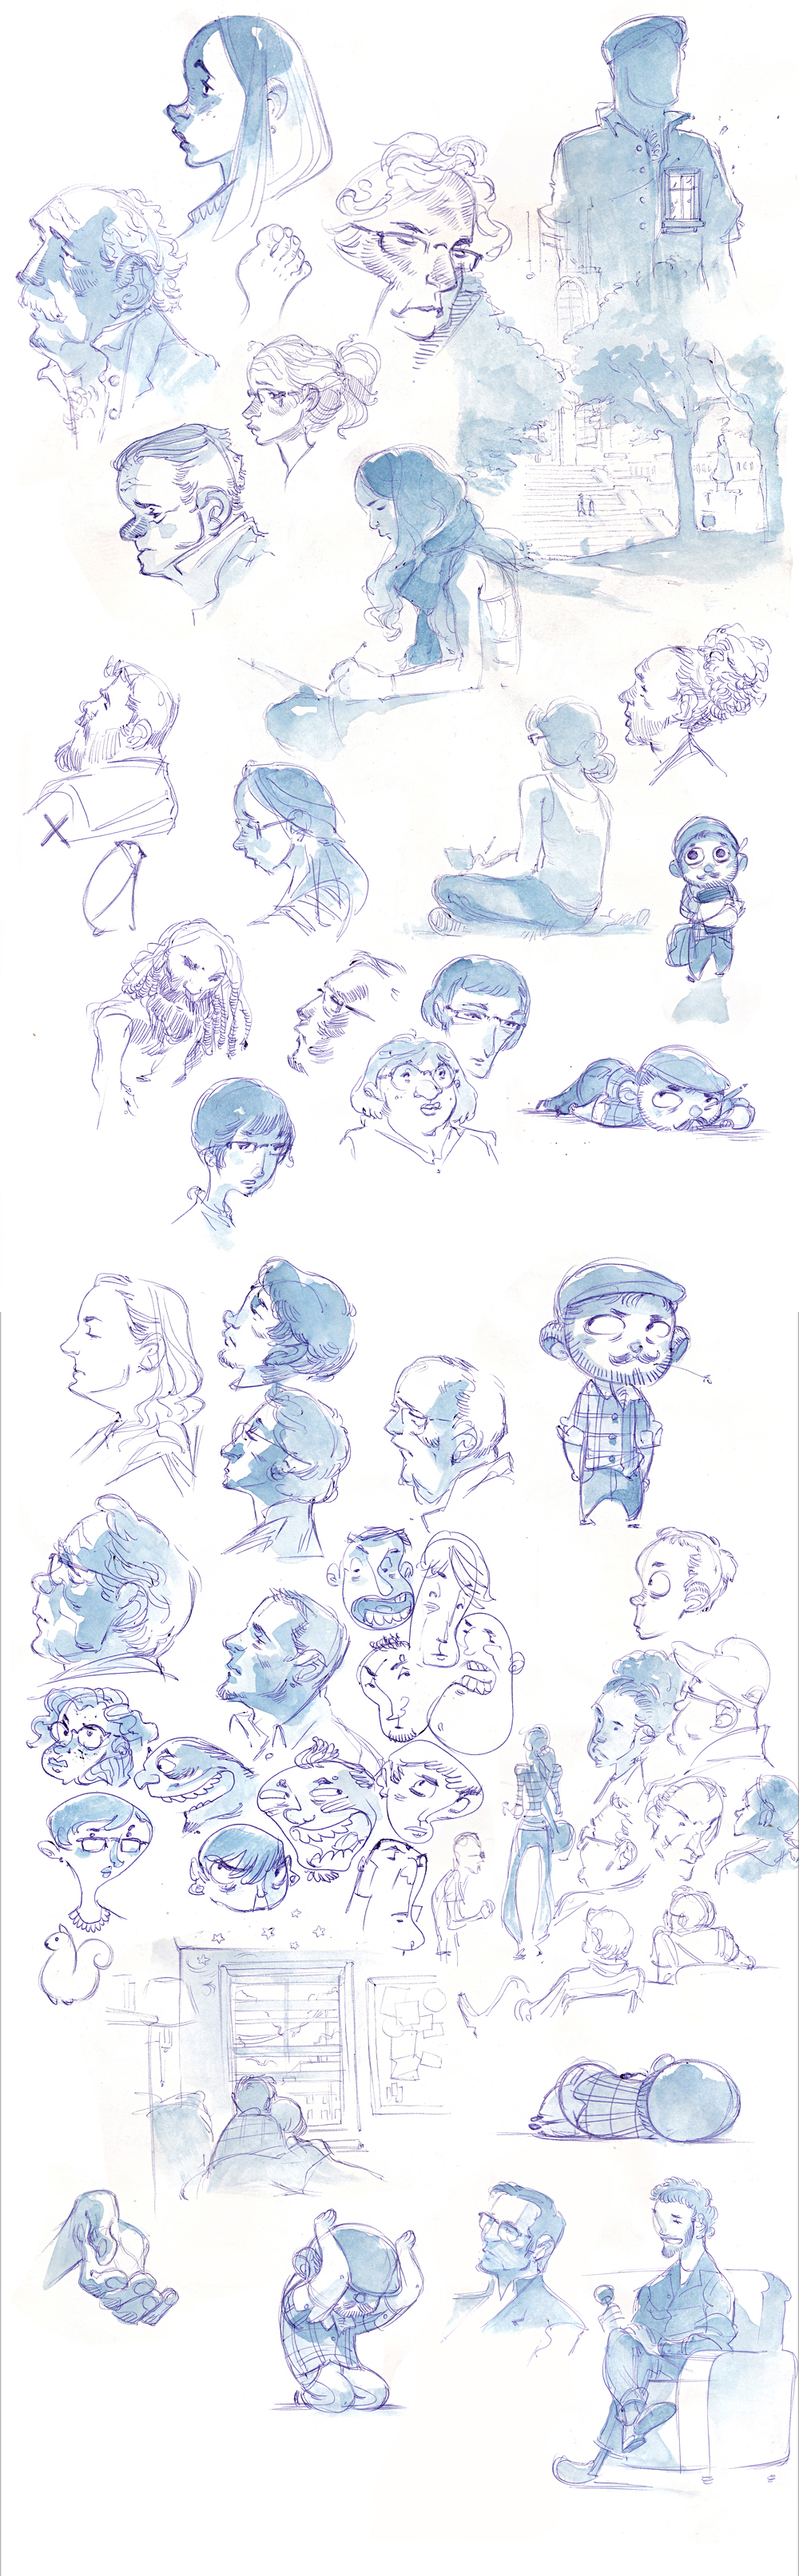 Watercolor Sketches from ICON7 by nicholaskole